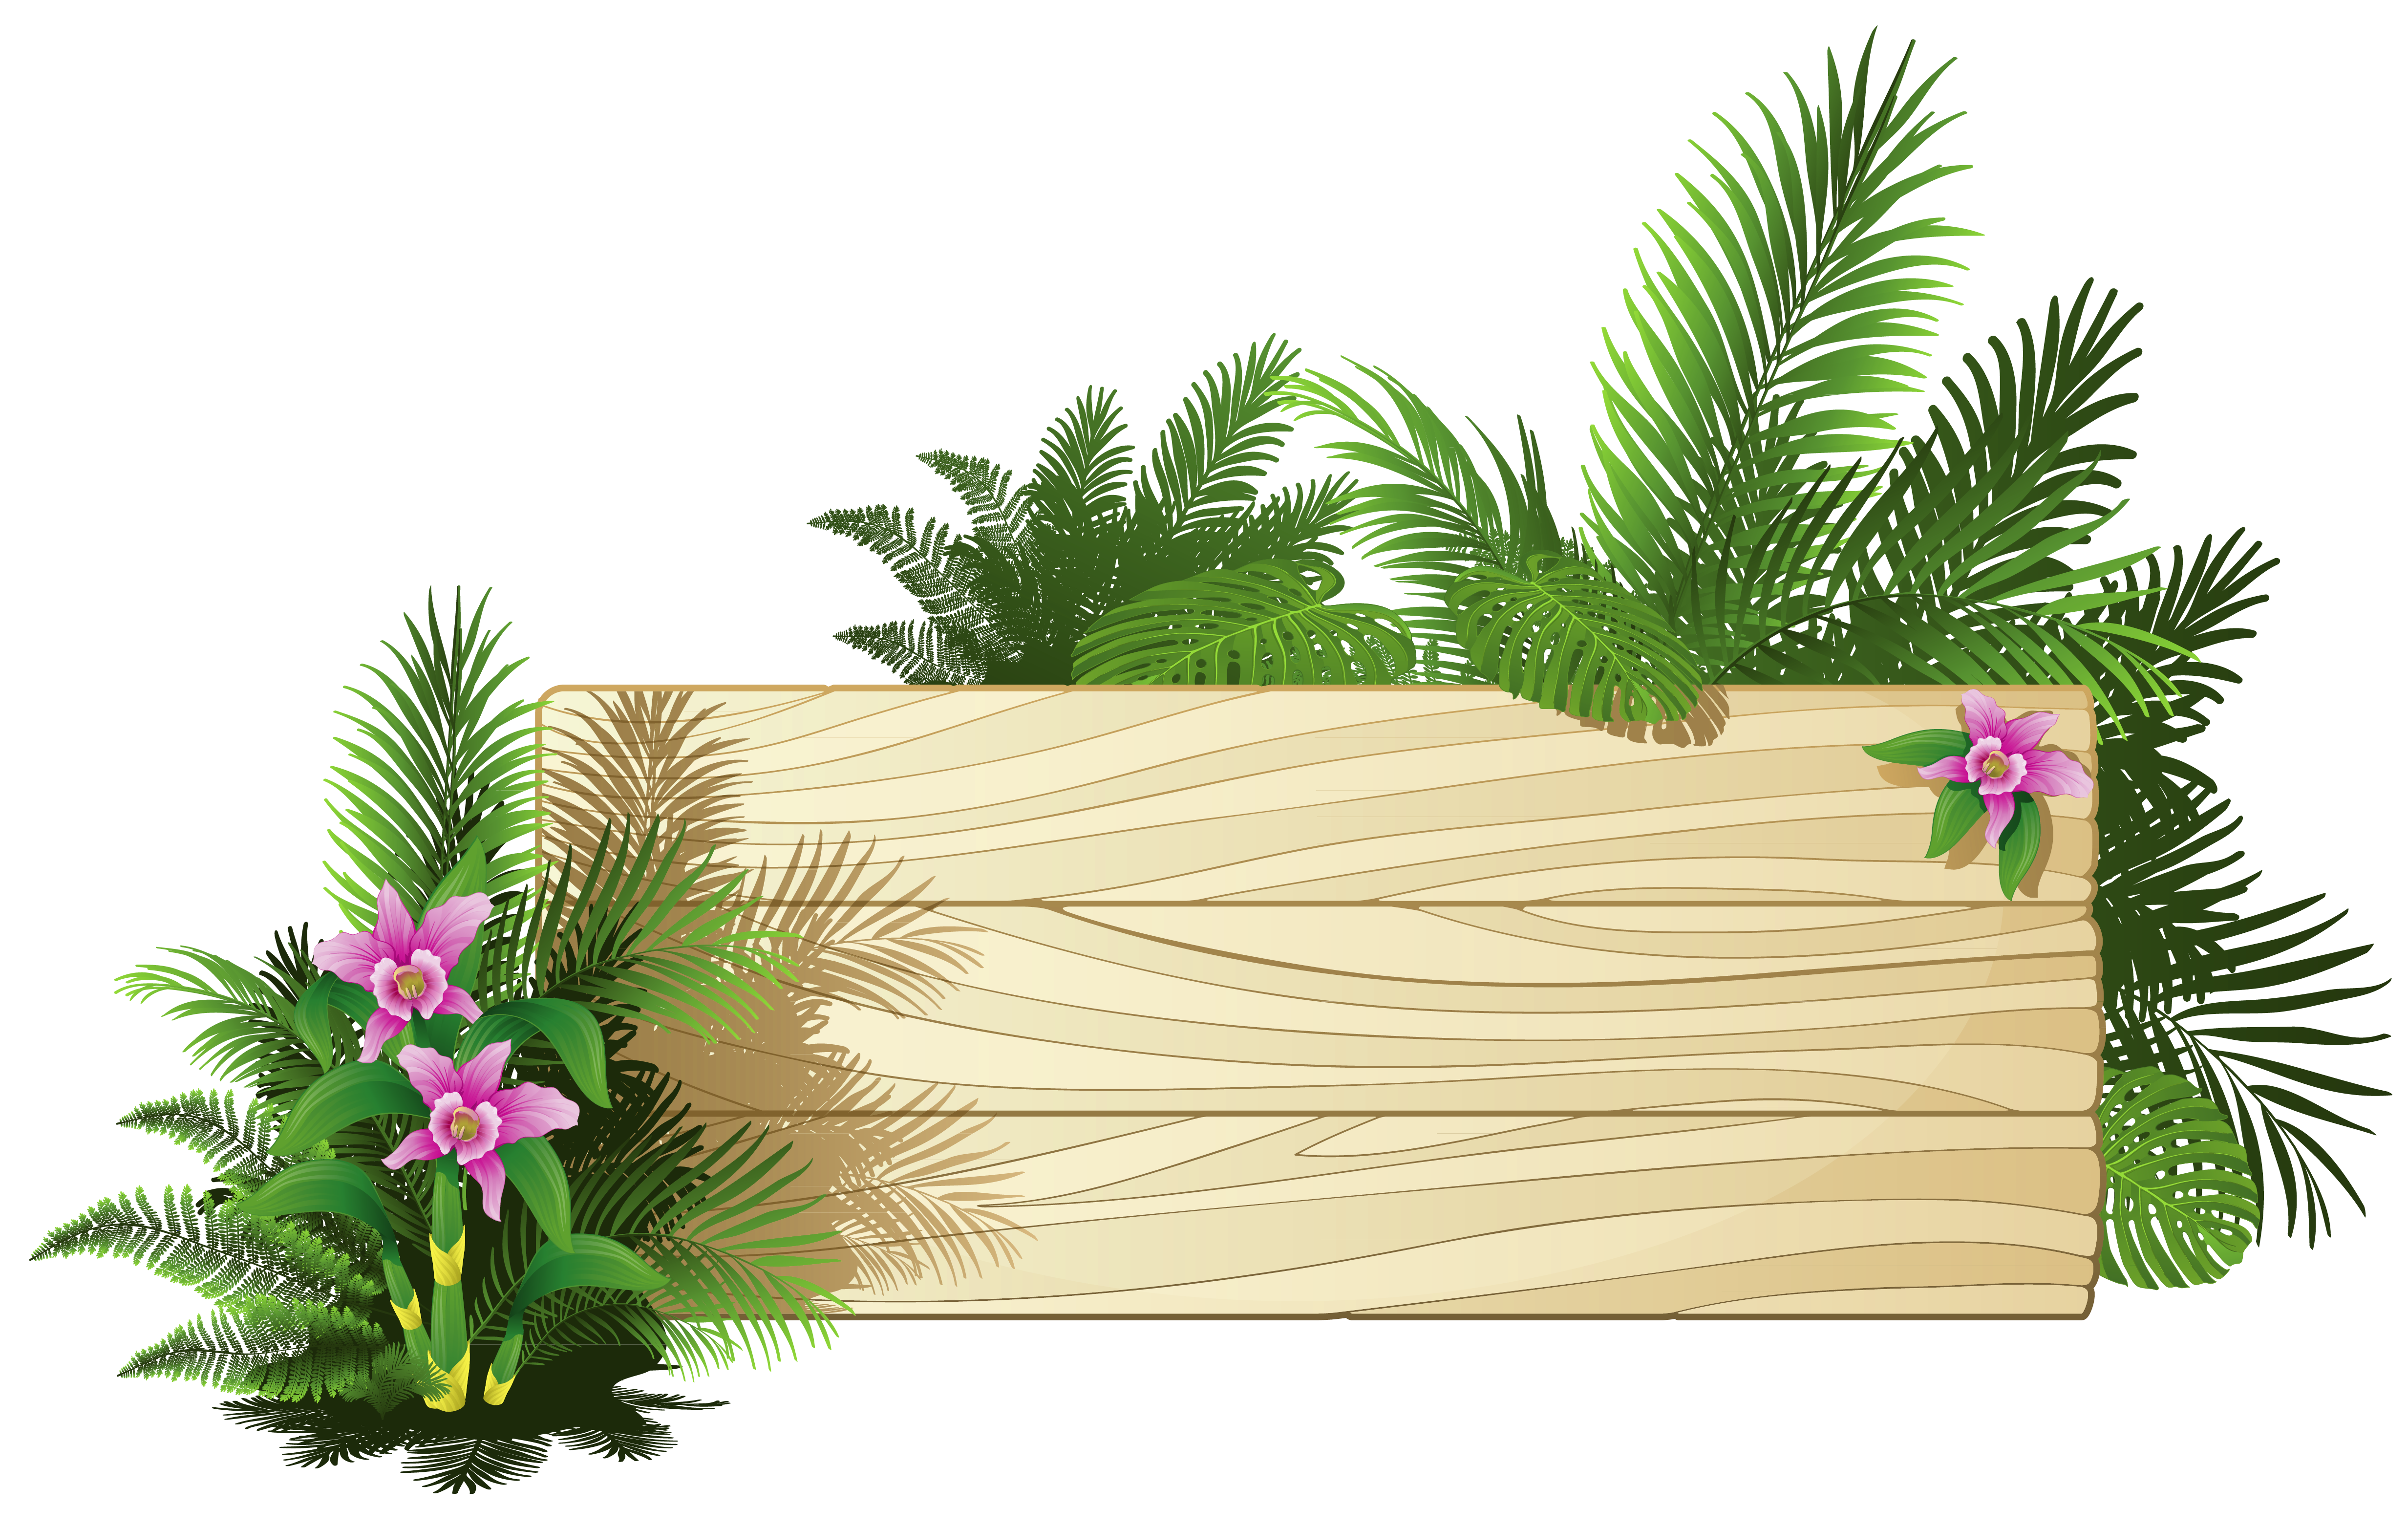 Frame clipart forest. Exotic board png labely